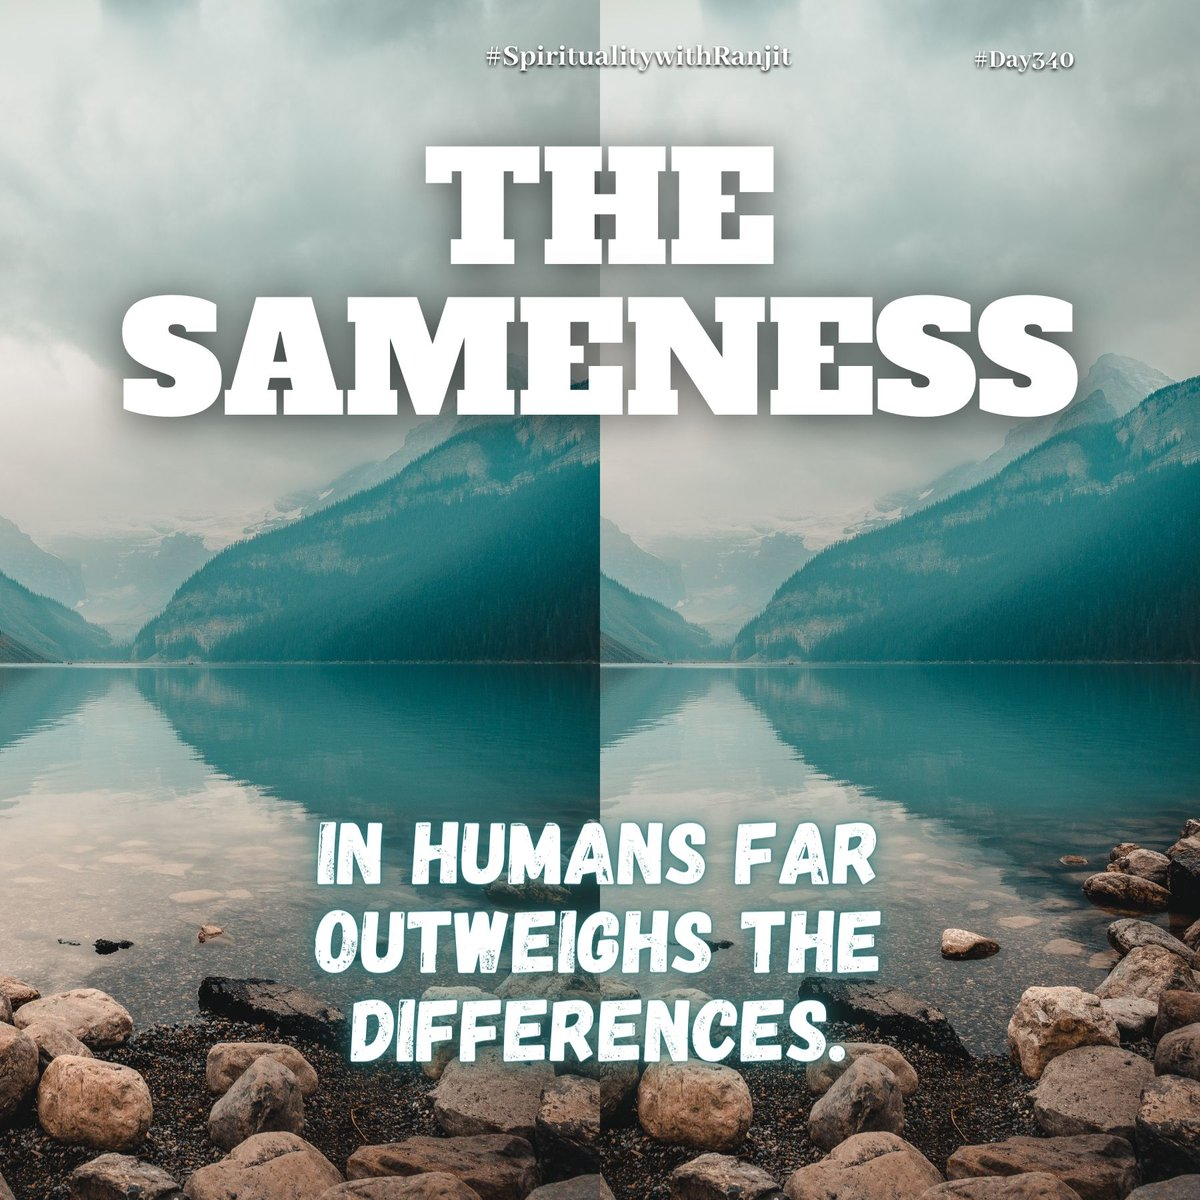 Read in today's post about the sameness in the human race and its role in spirituality.  Do read all the messages in this thread! Retweet if you like. (1/n)  #Post340 #SpiritualitywithRanjit #Sameness #Oneness #Unity #HumanRace #InterfaithHarmony #Differences